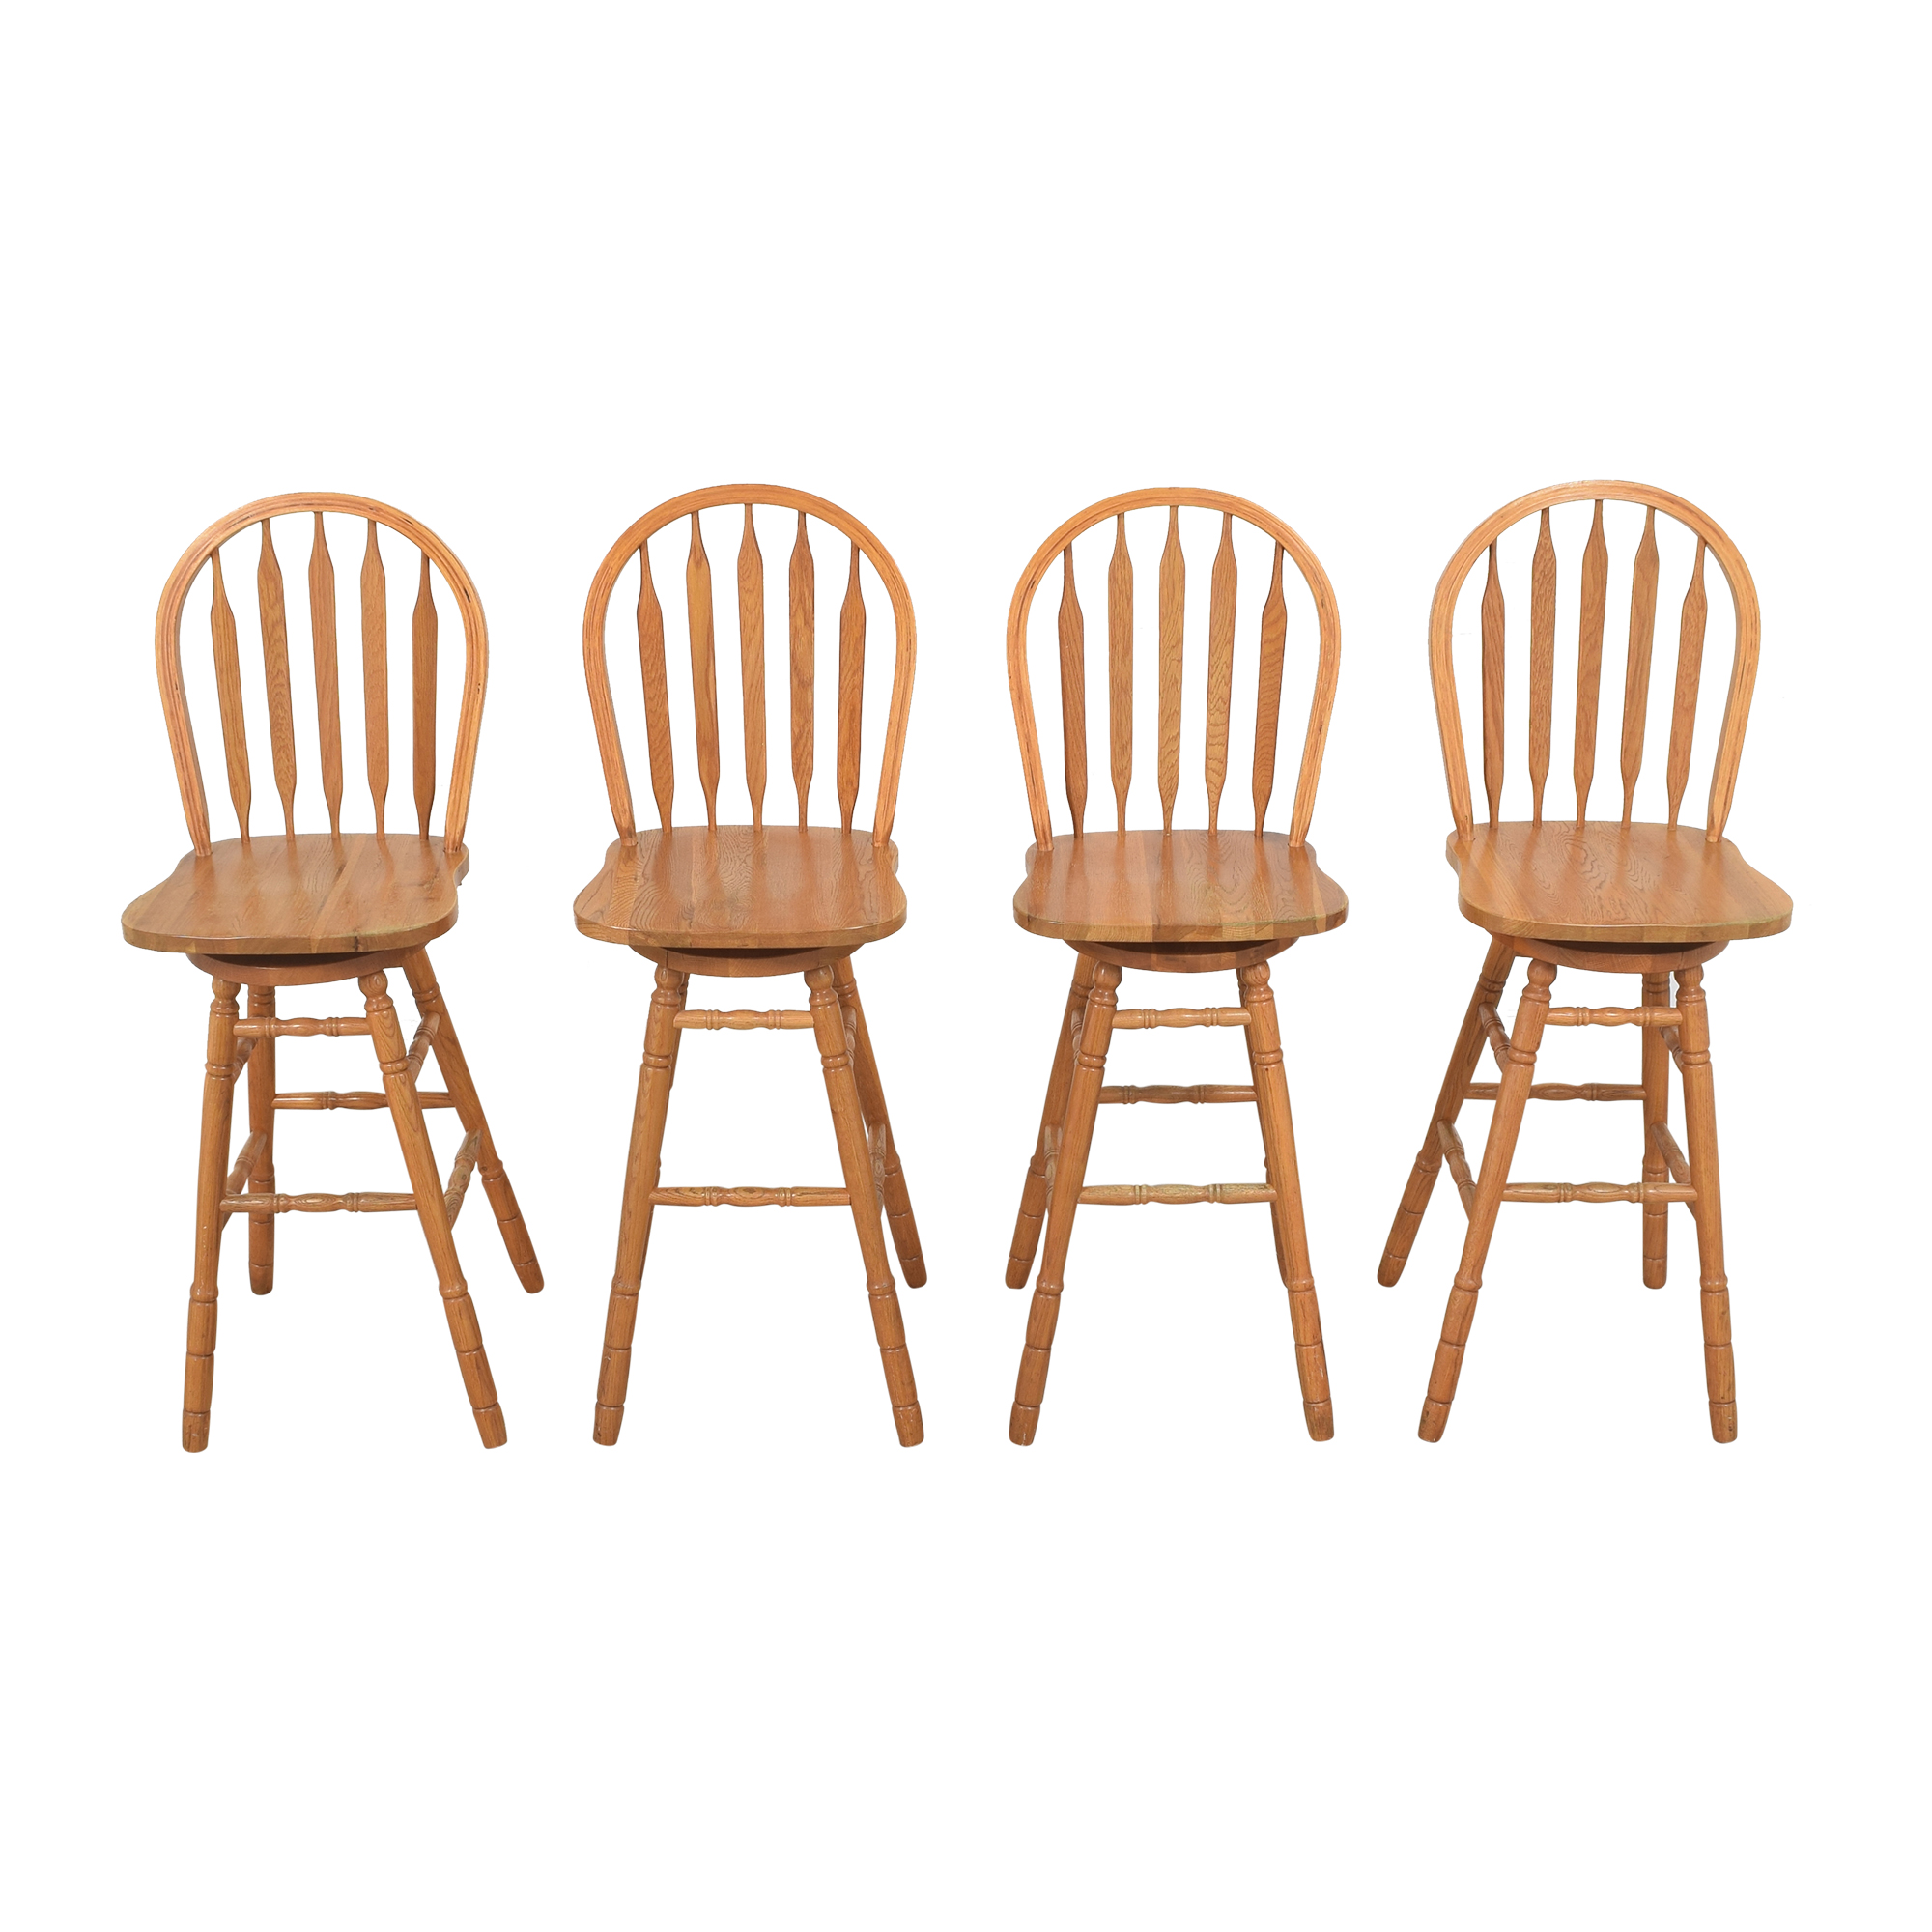 Gothic Cabinet Craft Bar Stools / Chairs